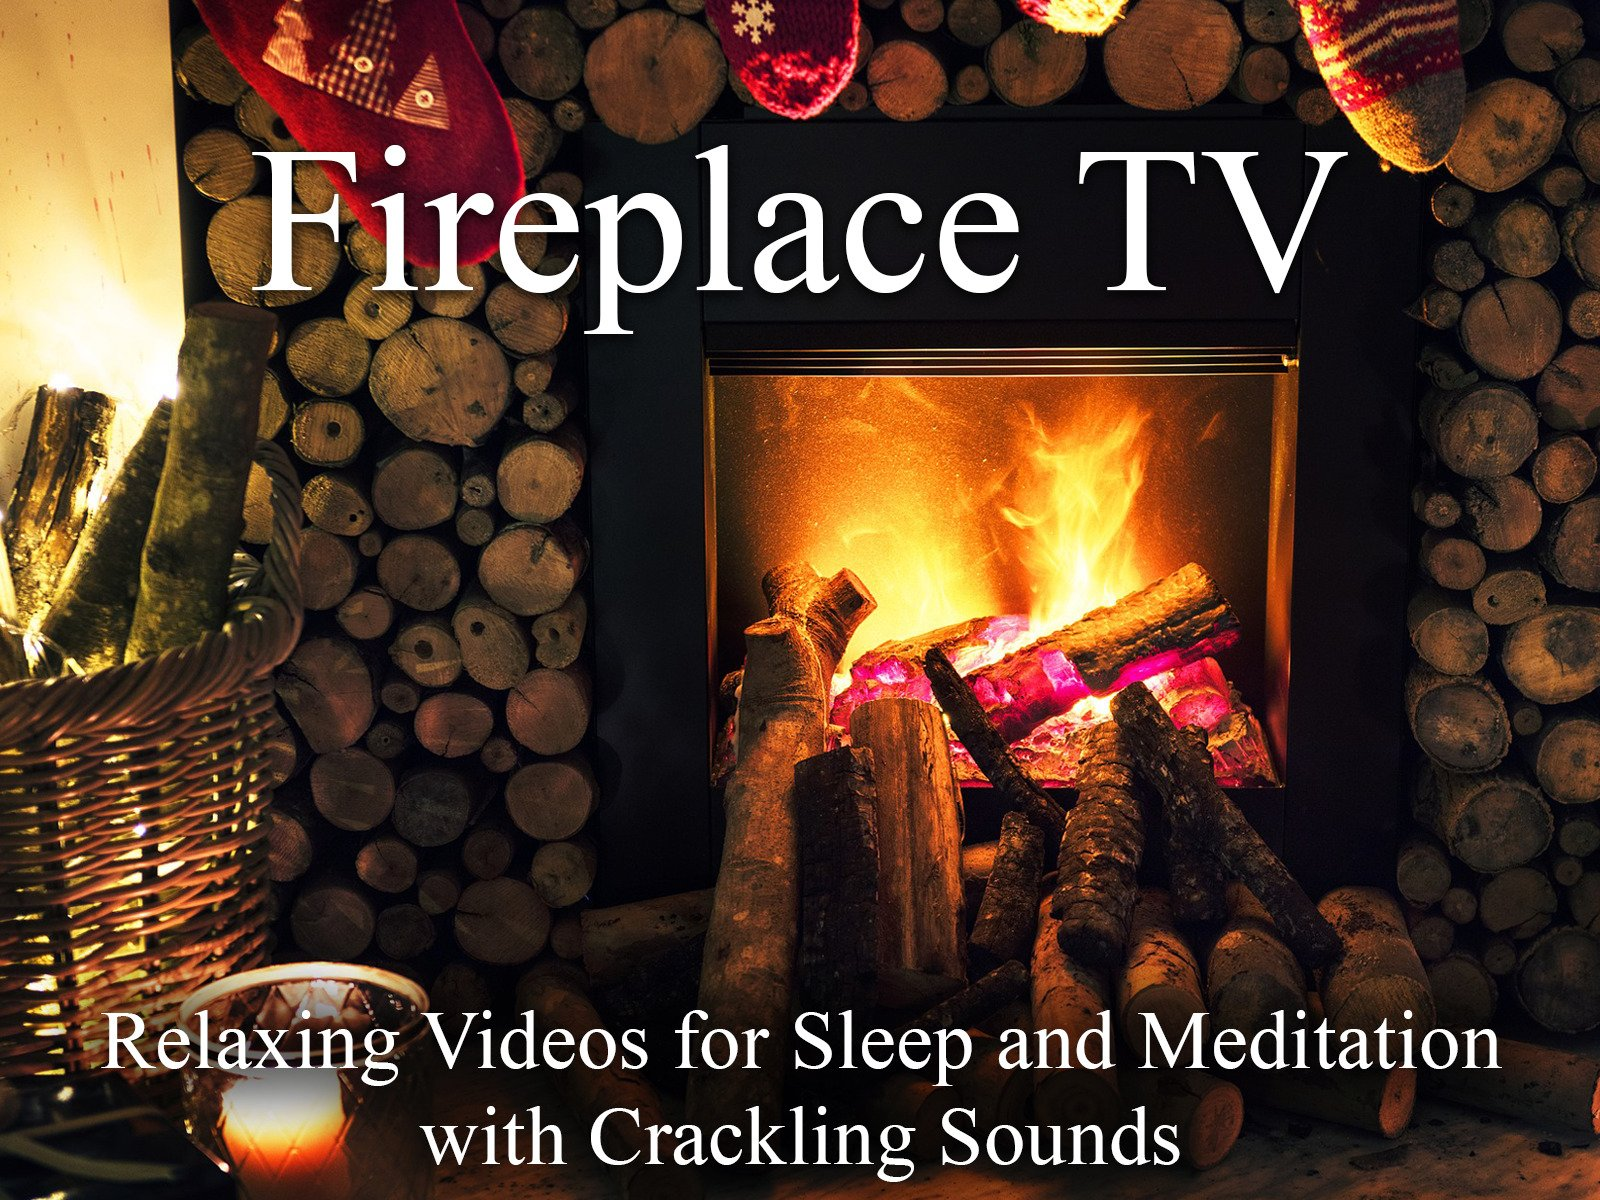 Fireplace TV Relaxing Videos for Sleep and Meditation with Crackling Sounds on Amazon Prime Instant Video UK